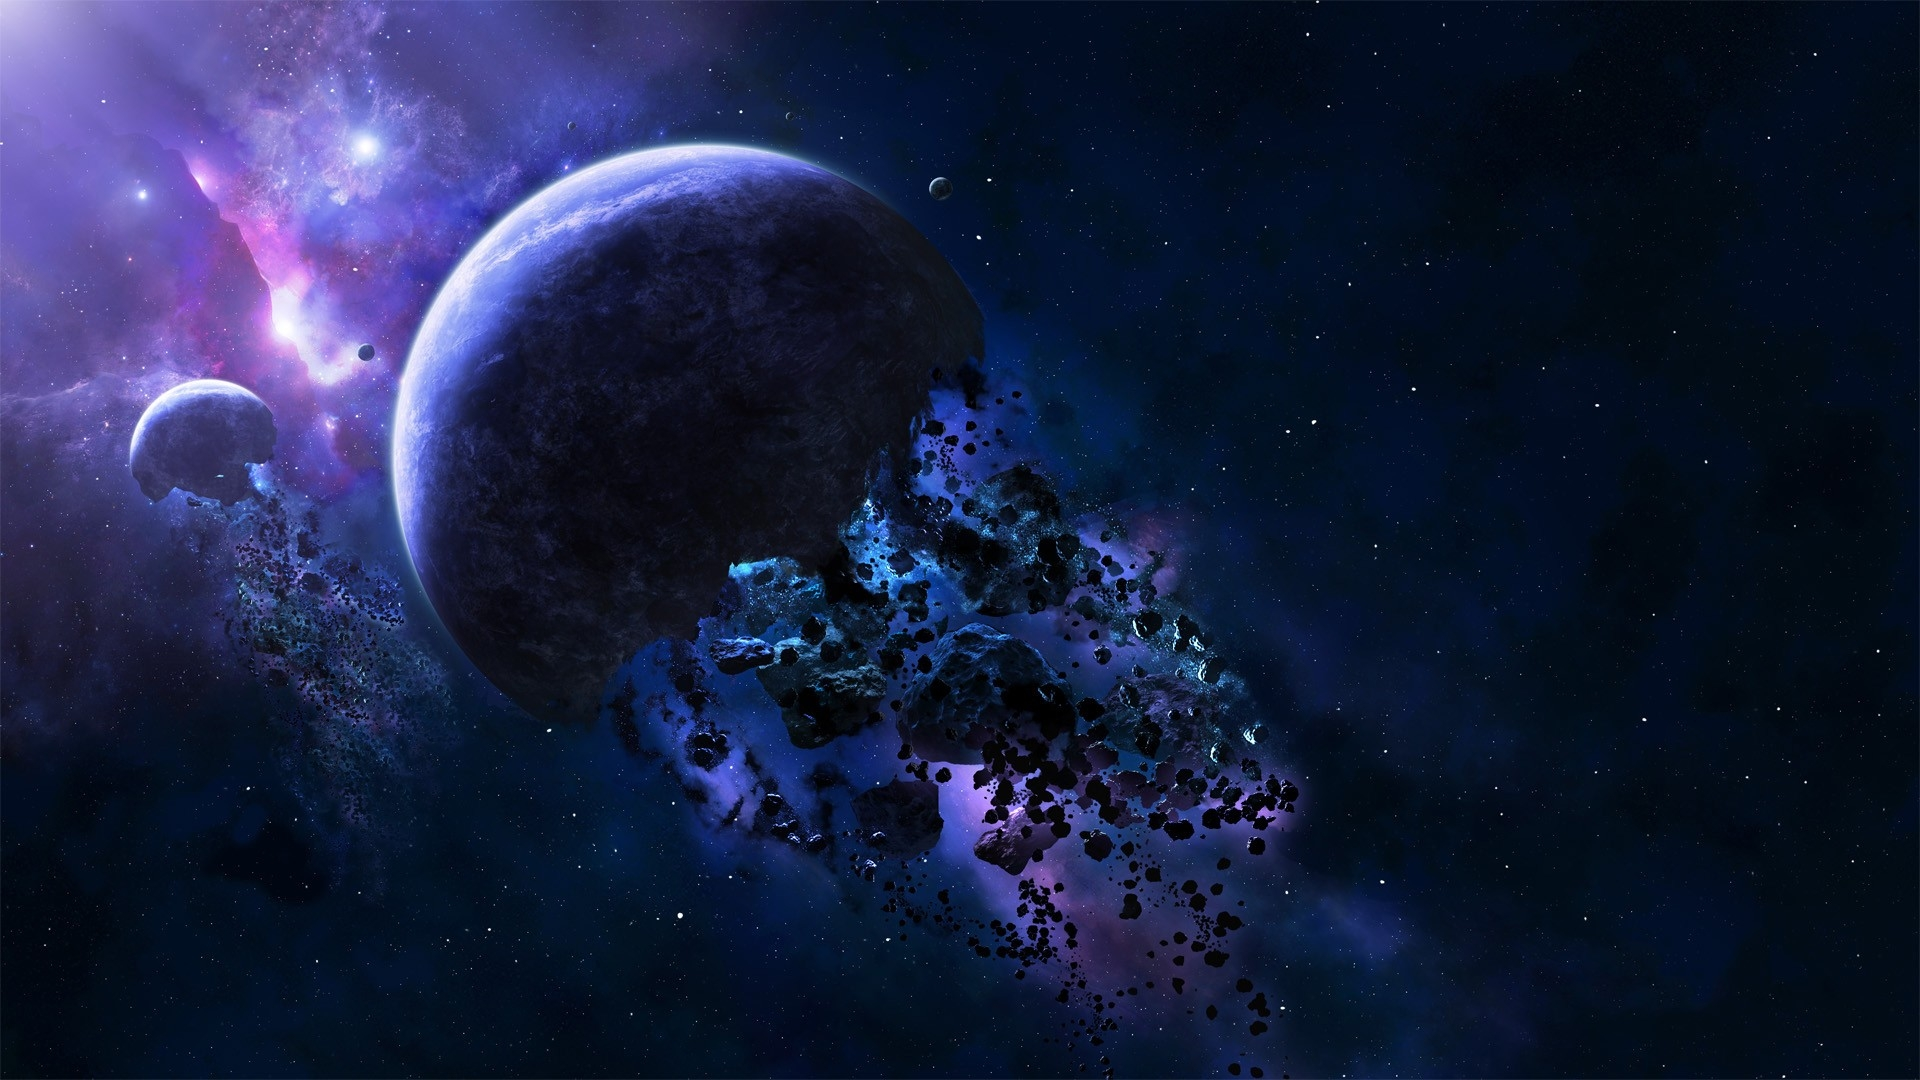 HD Space Wallpaper 1920x1080 - WallpaperSafari